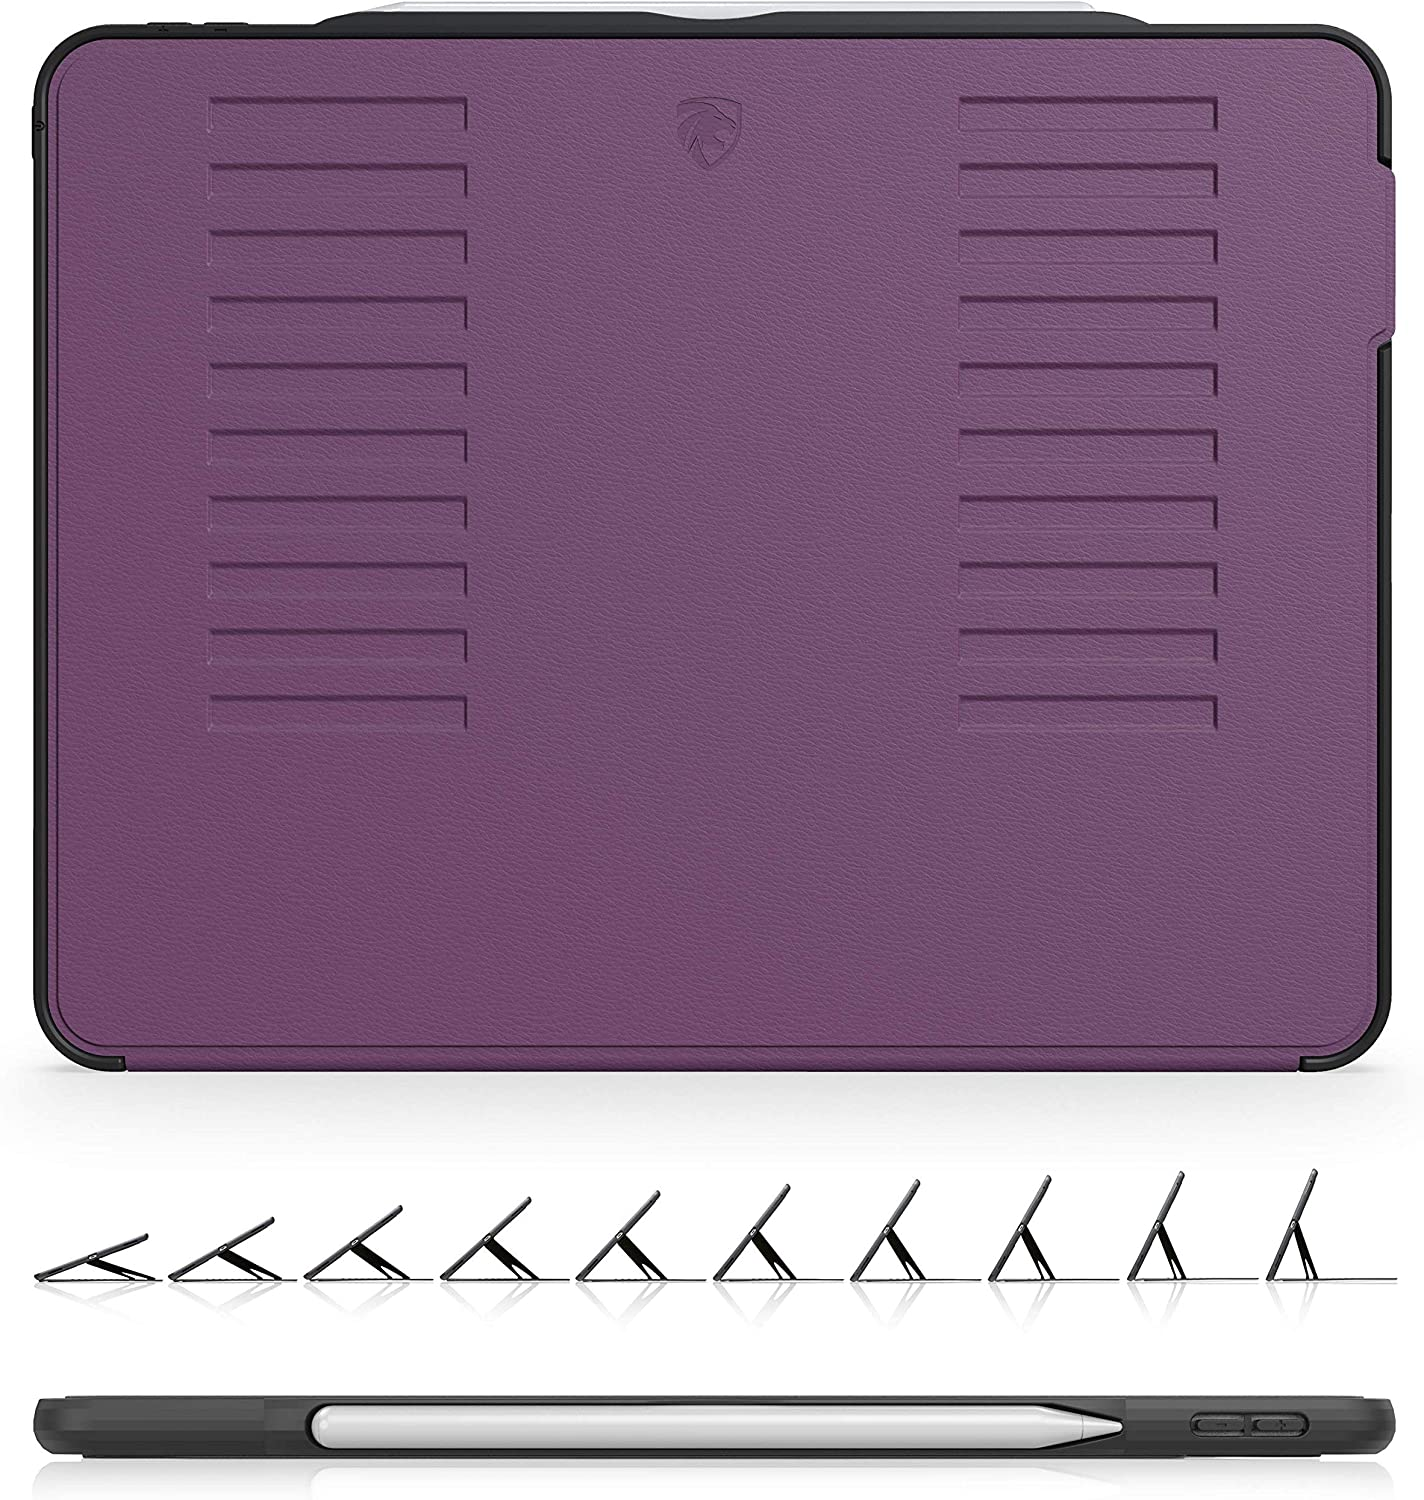 The Muse Case - 2018 iPad Pro 12.9 inch 3rd Gen (Old Model) - Very Protective But Thin + Convenient Magnetic Stand + Sleep/Wake Cover by ZUGU CASE (Purple) (Model #'s A1876, A2014, A1895, A1983)